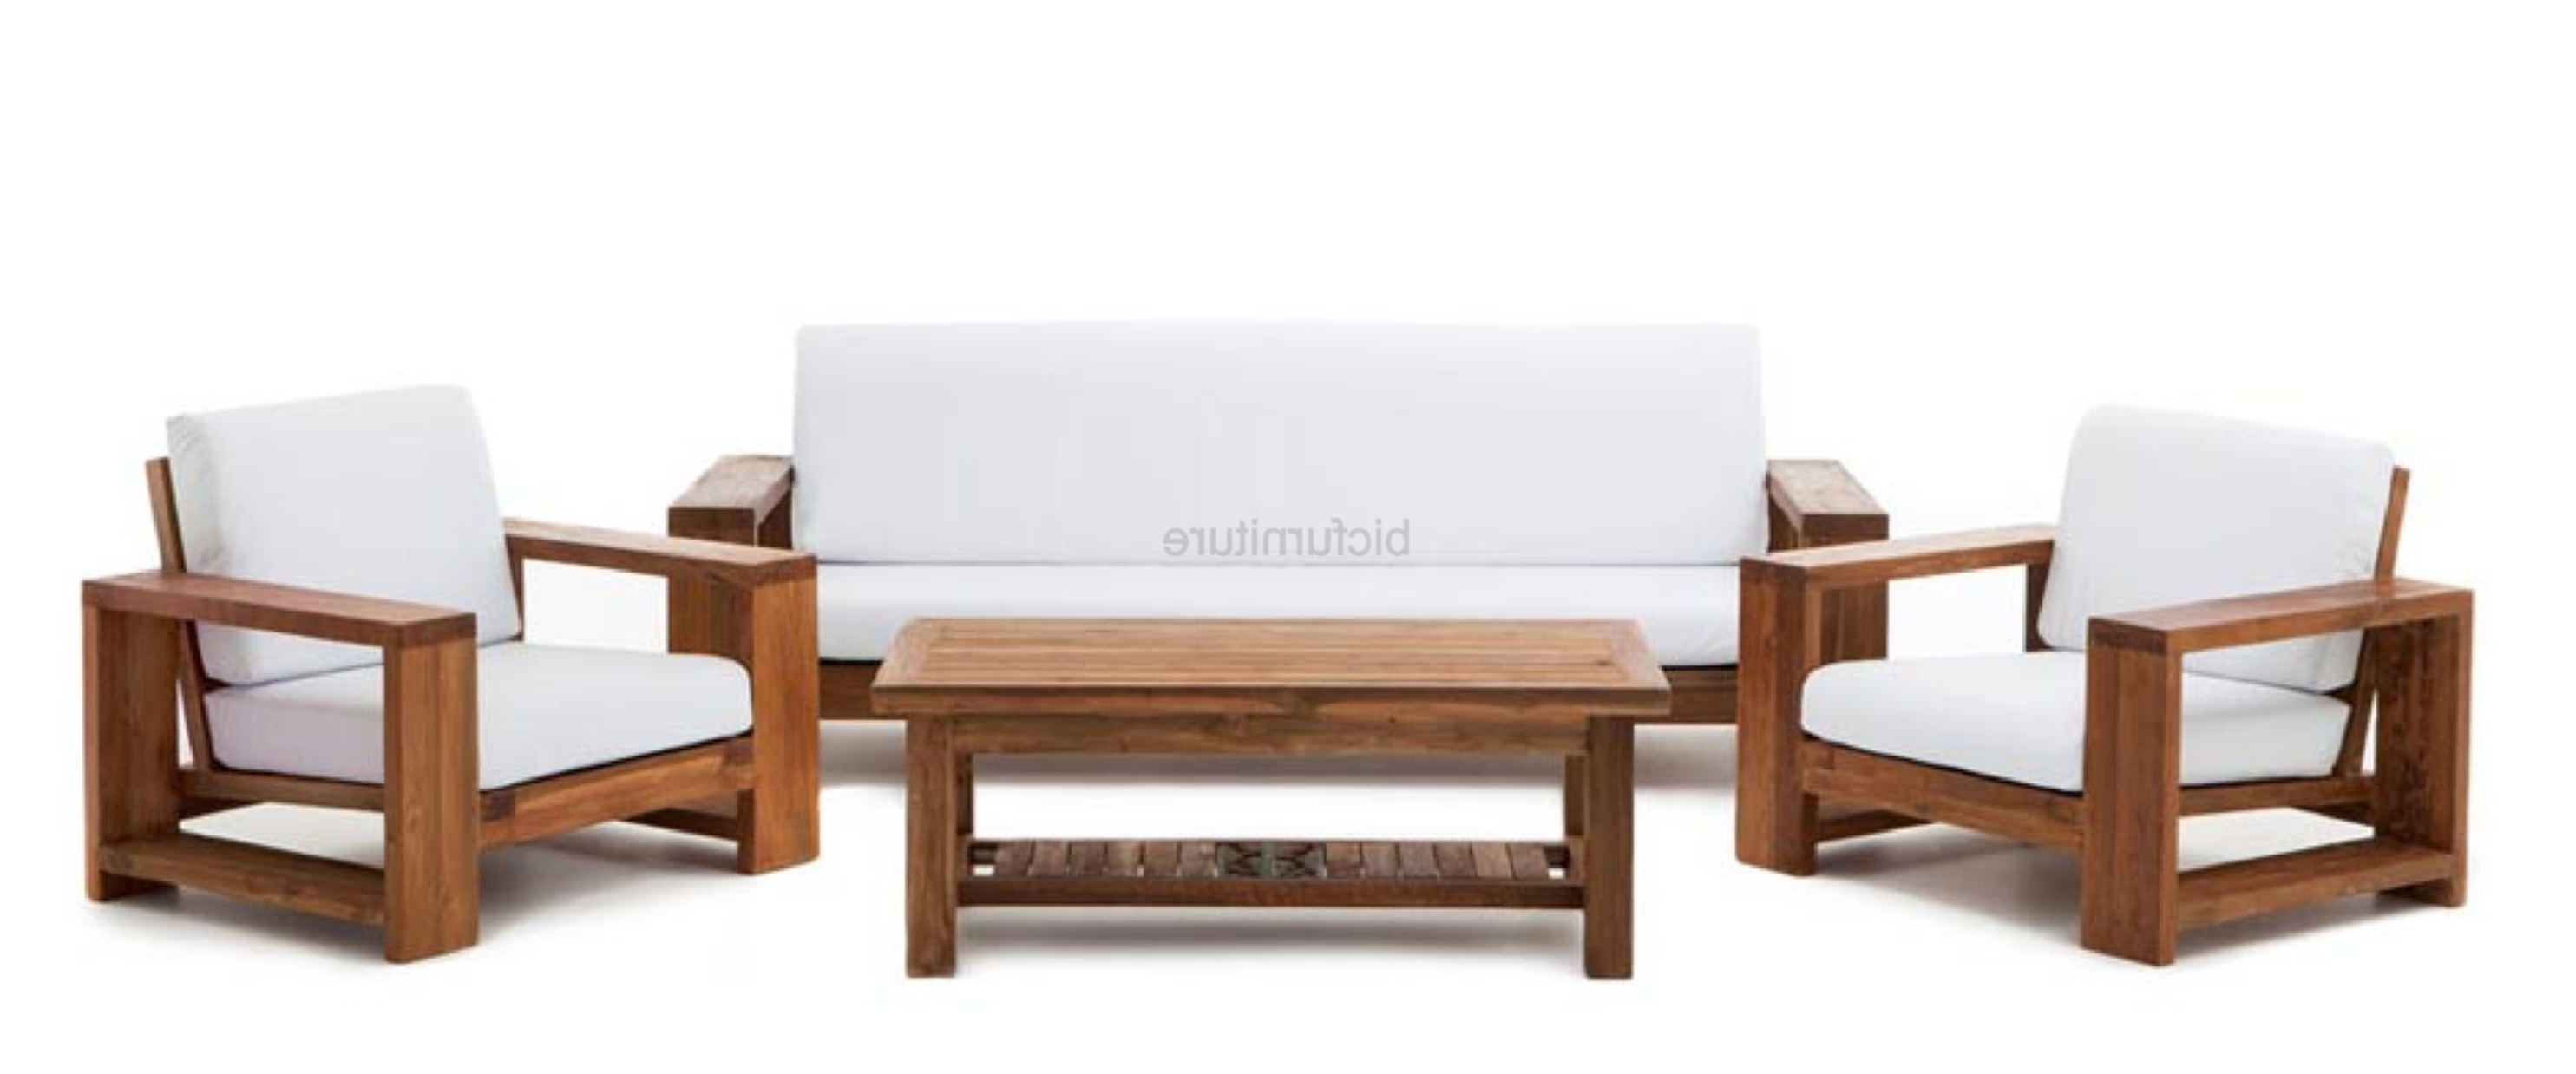 Most Up To Date Teak Wood Furniture Designs Unique Teak Wood Sofa Set Designs For Comfortable Sofas And Chairs (View 15 of 20)